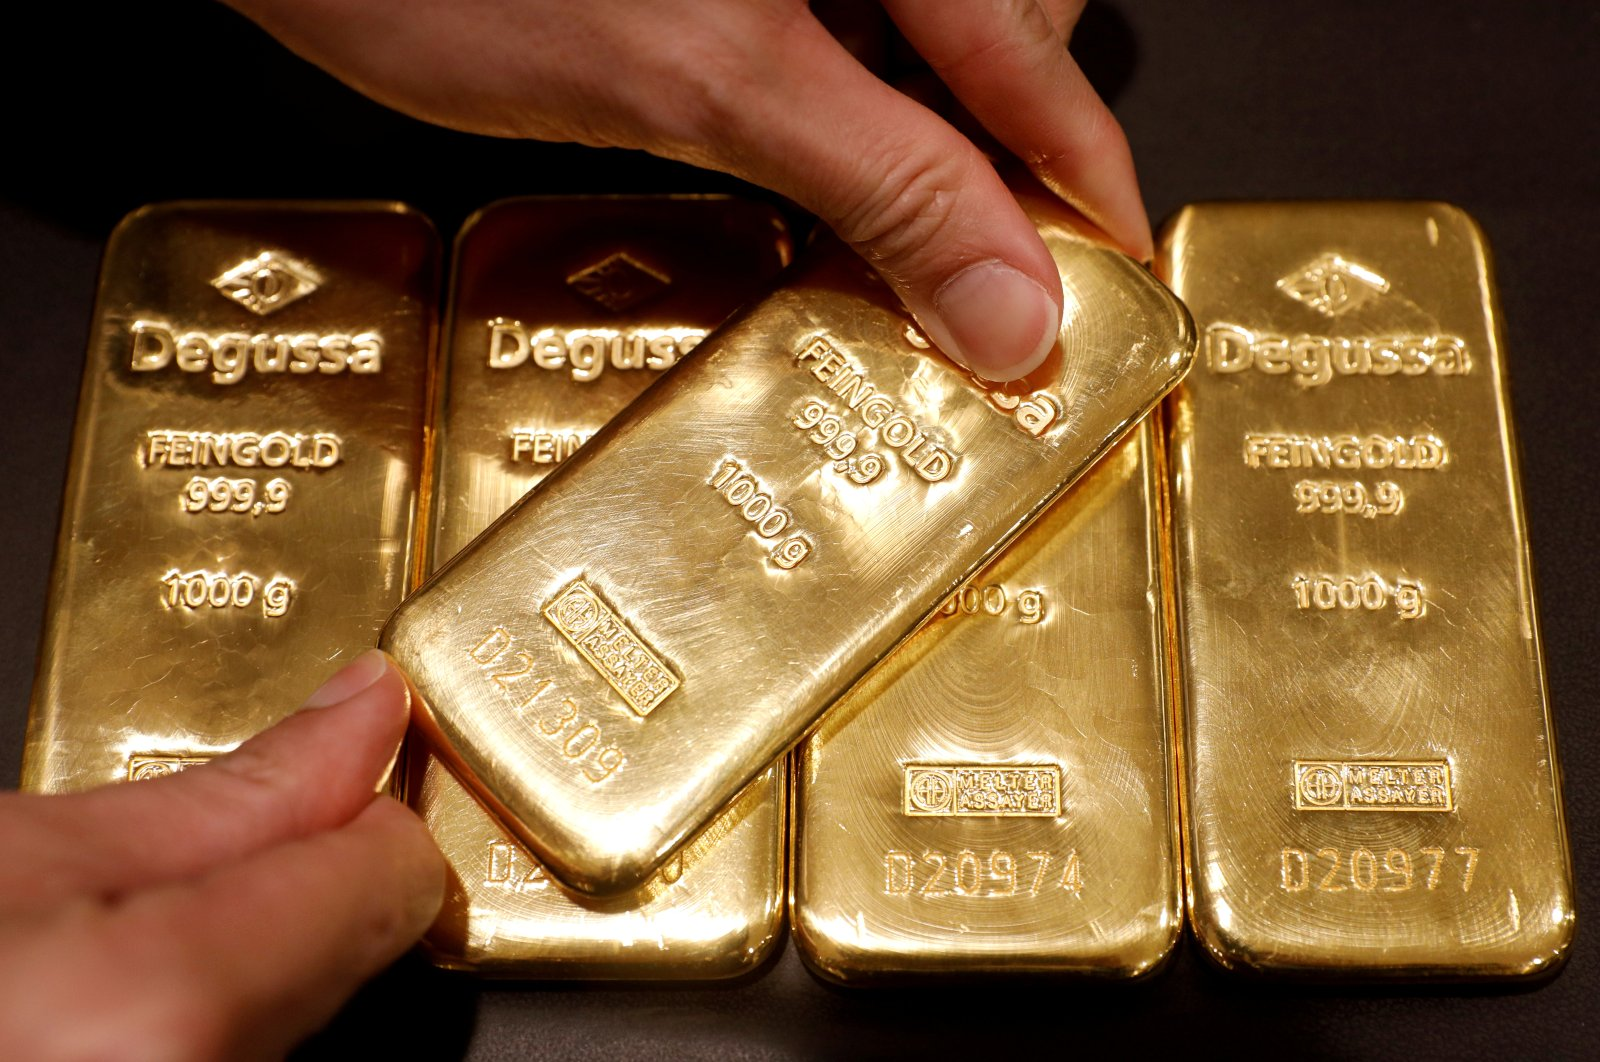 In this June 16, 2017, file photo, an employee shows gold bullions at Degussa shop in Singapore. (Reuters Photo)